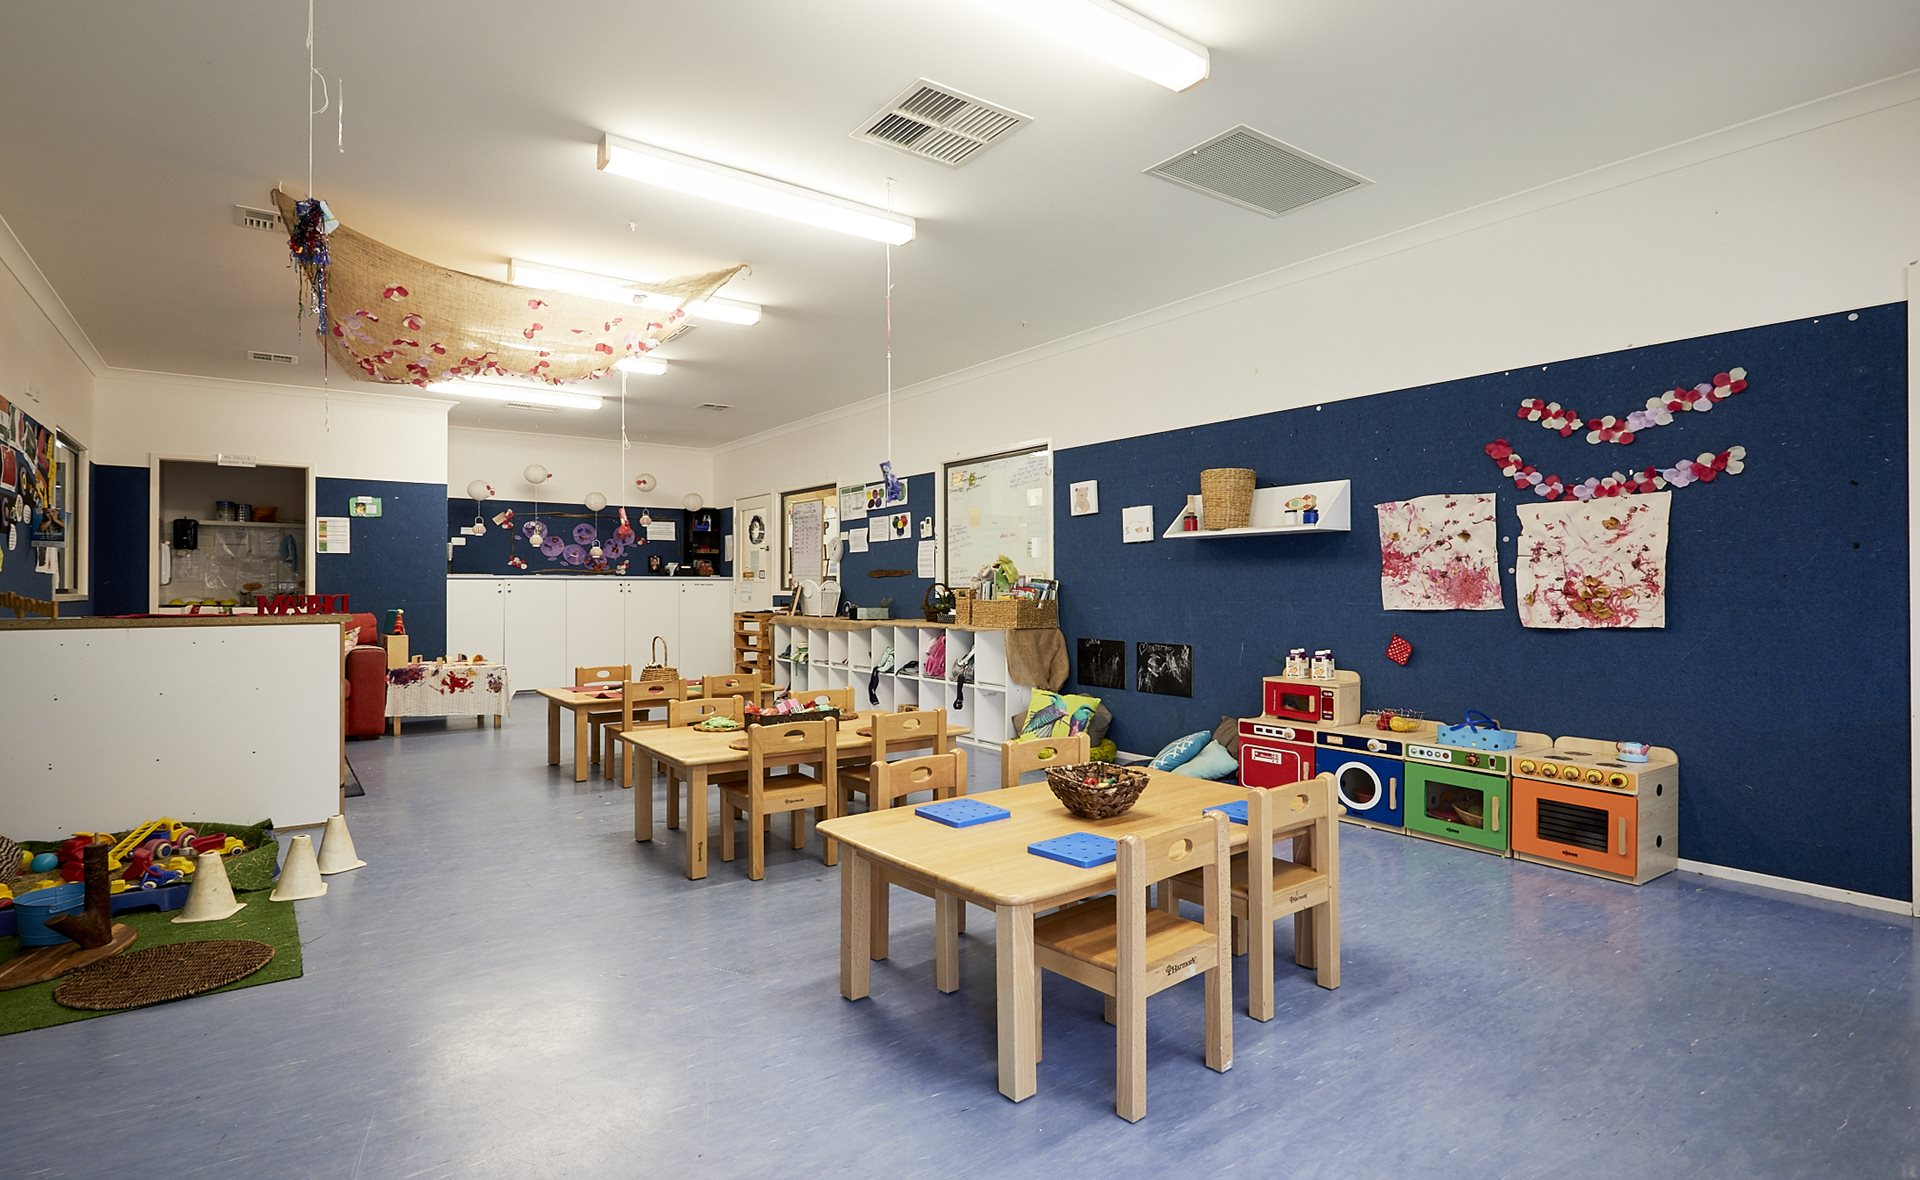 Preschool child care classroom at The Learning Tree Yarralumla